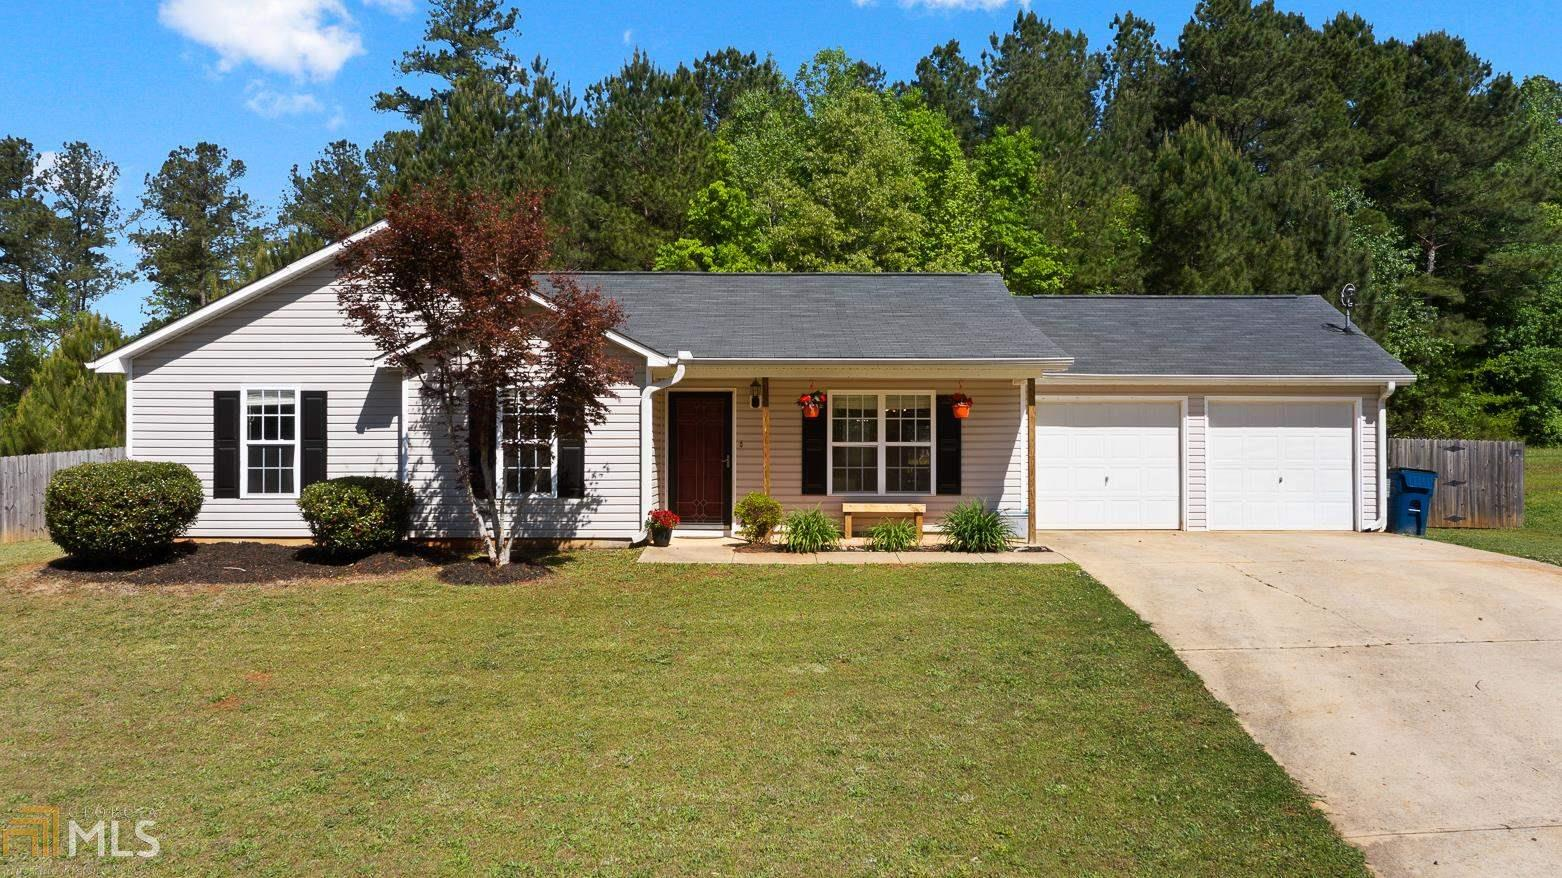 Image for property 444 Thorn Thicket, Rockmart, GA 30153-7495